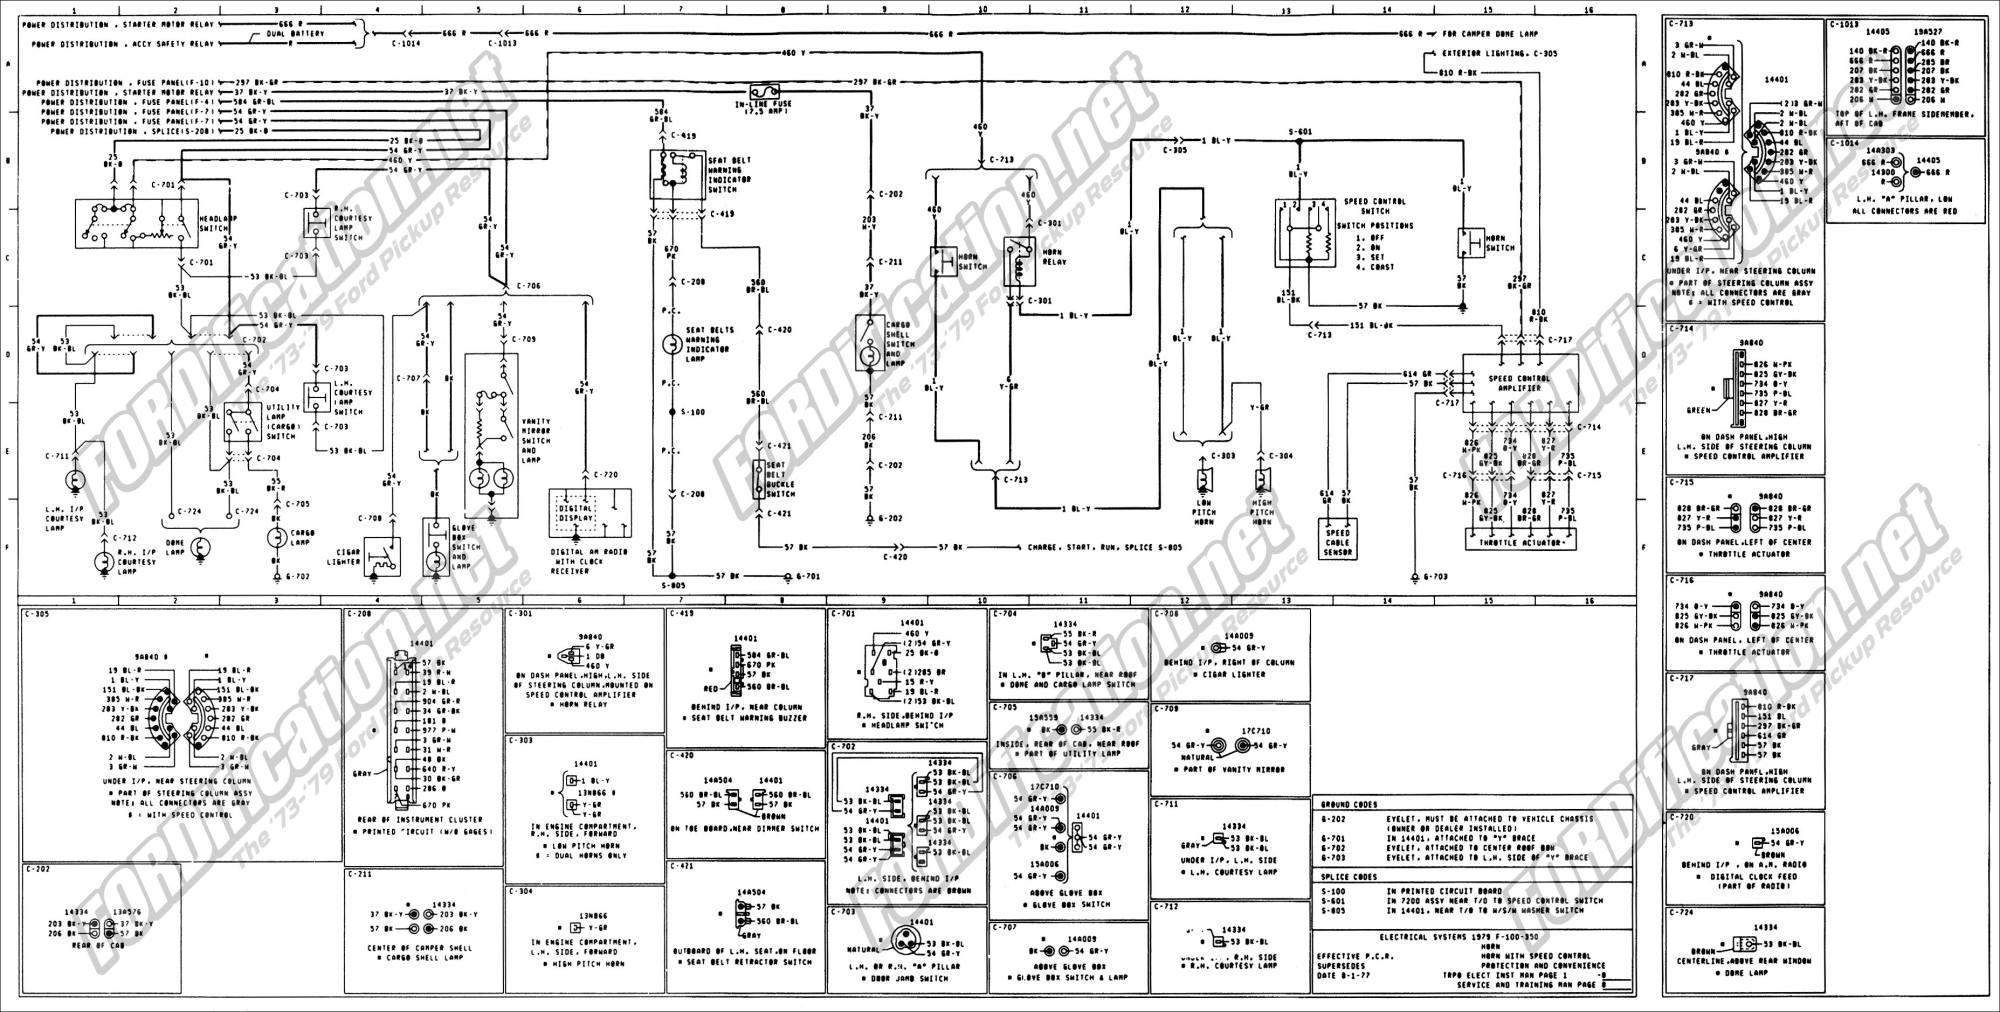 hight resolution of 1961 ford f100 wiring diagram for color house wiring diagram symbols u2022 rh mollusksurfshopnyc com 1976